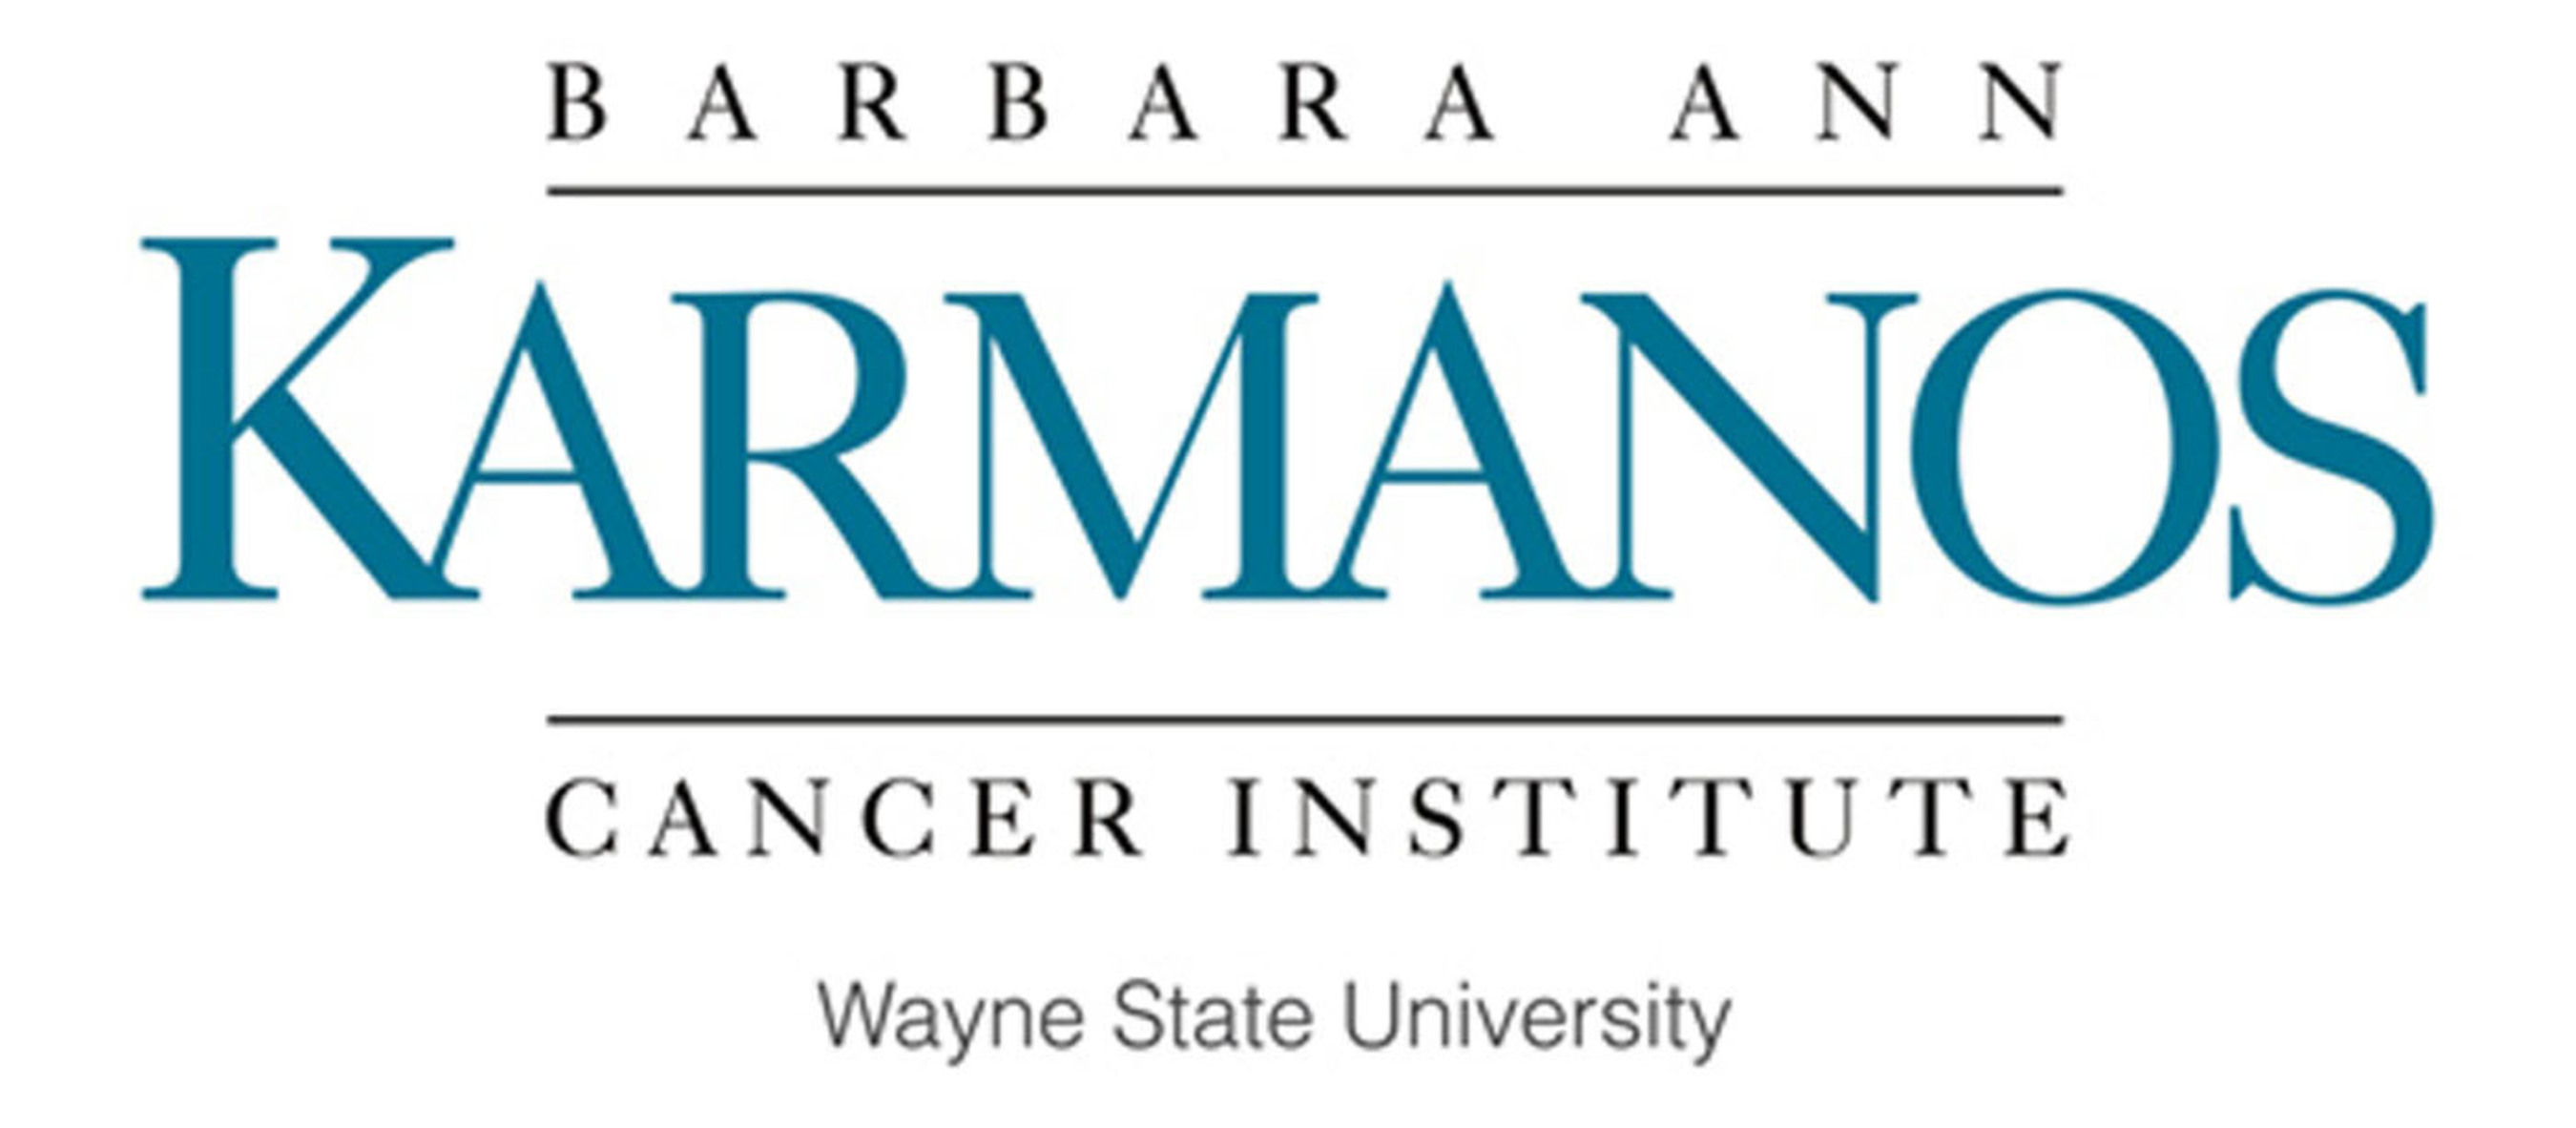 Barbara Ann Karmanos Cancer Institute Logo.